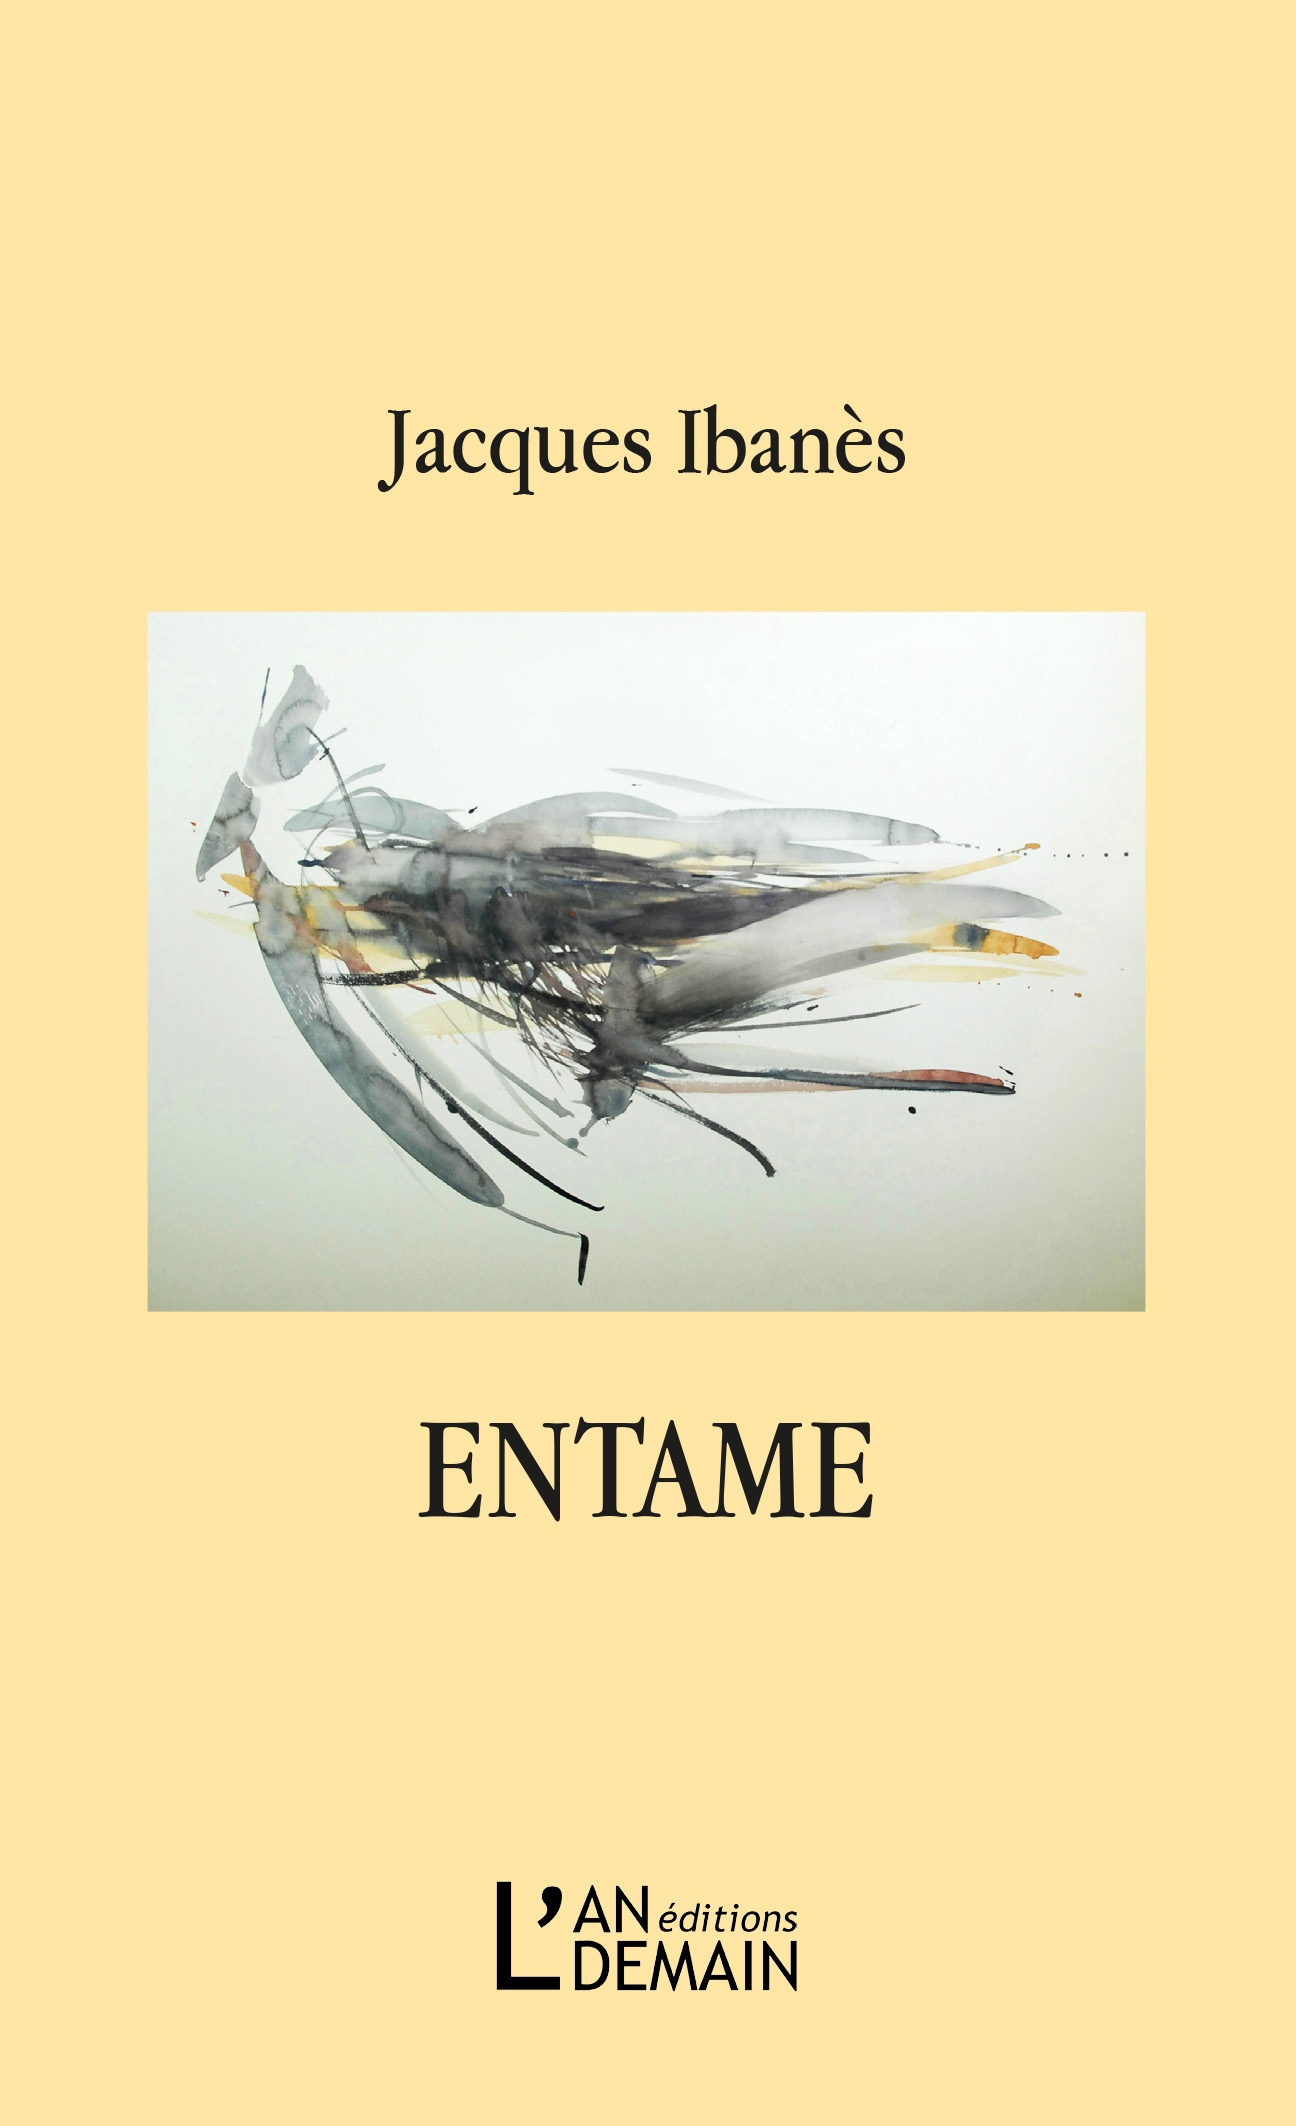 cover-ibanes-recto